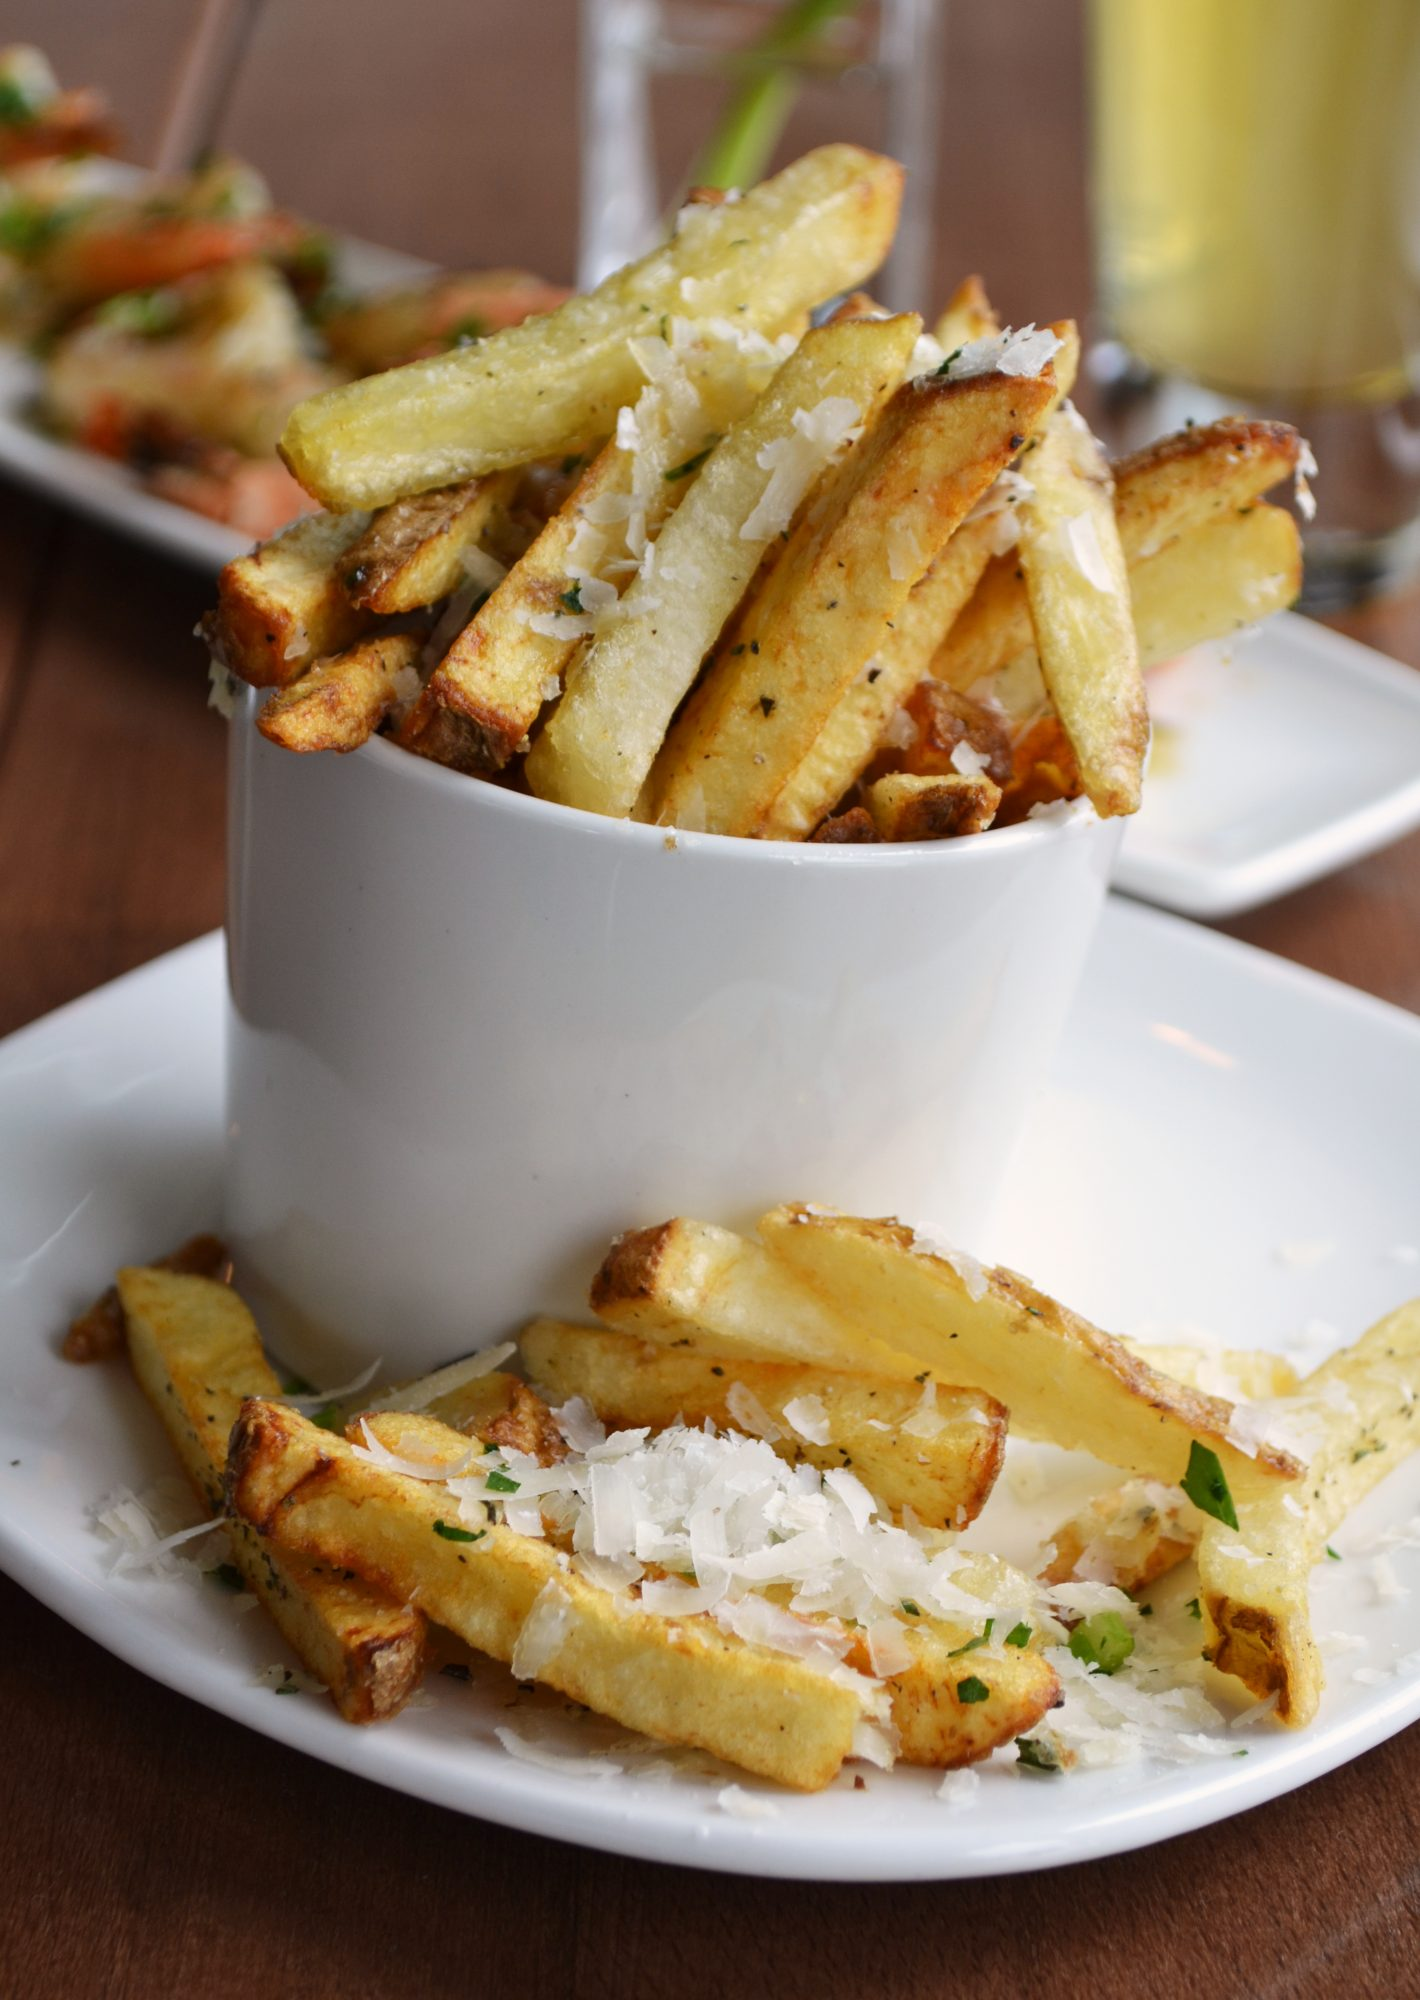 500 Cucina fries 1